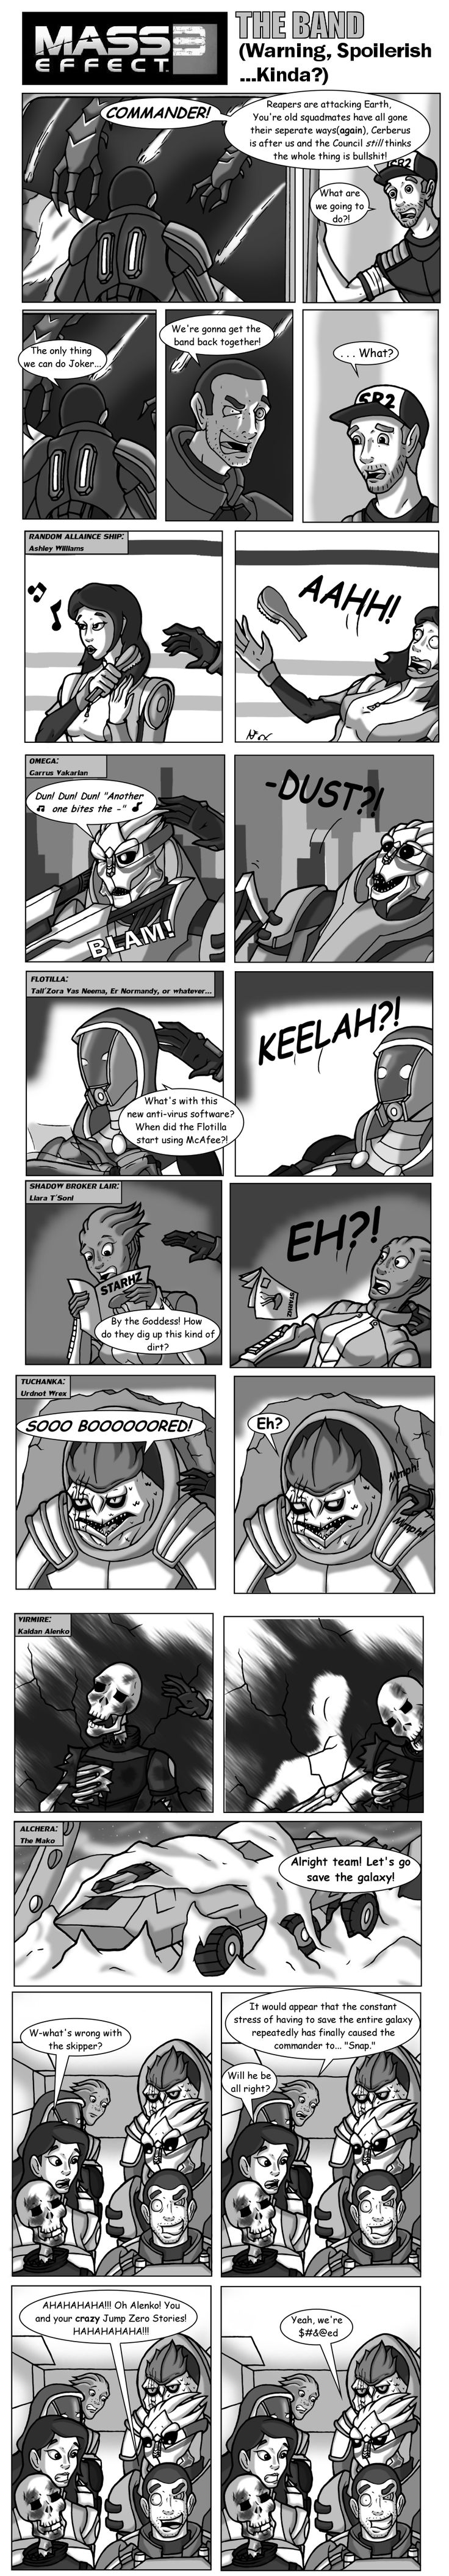 Mass Effect 3 The Band by ~HGuyver on deviantART